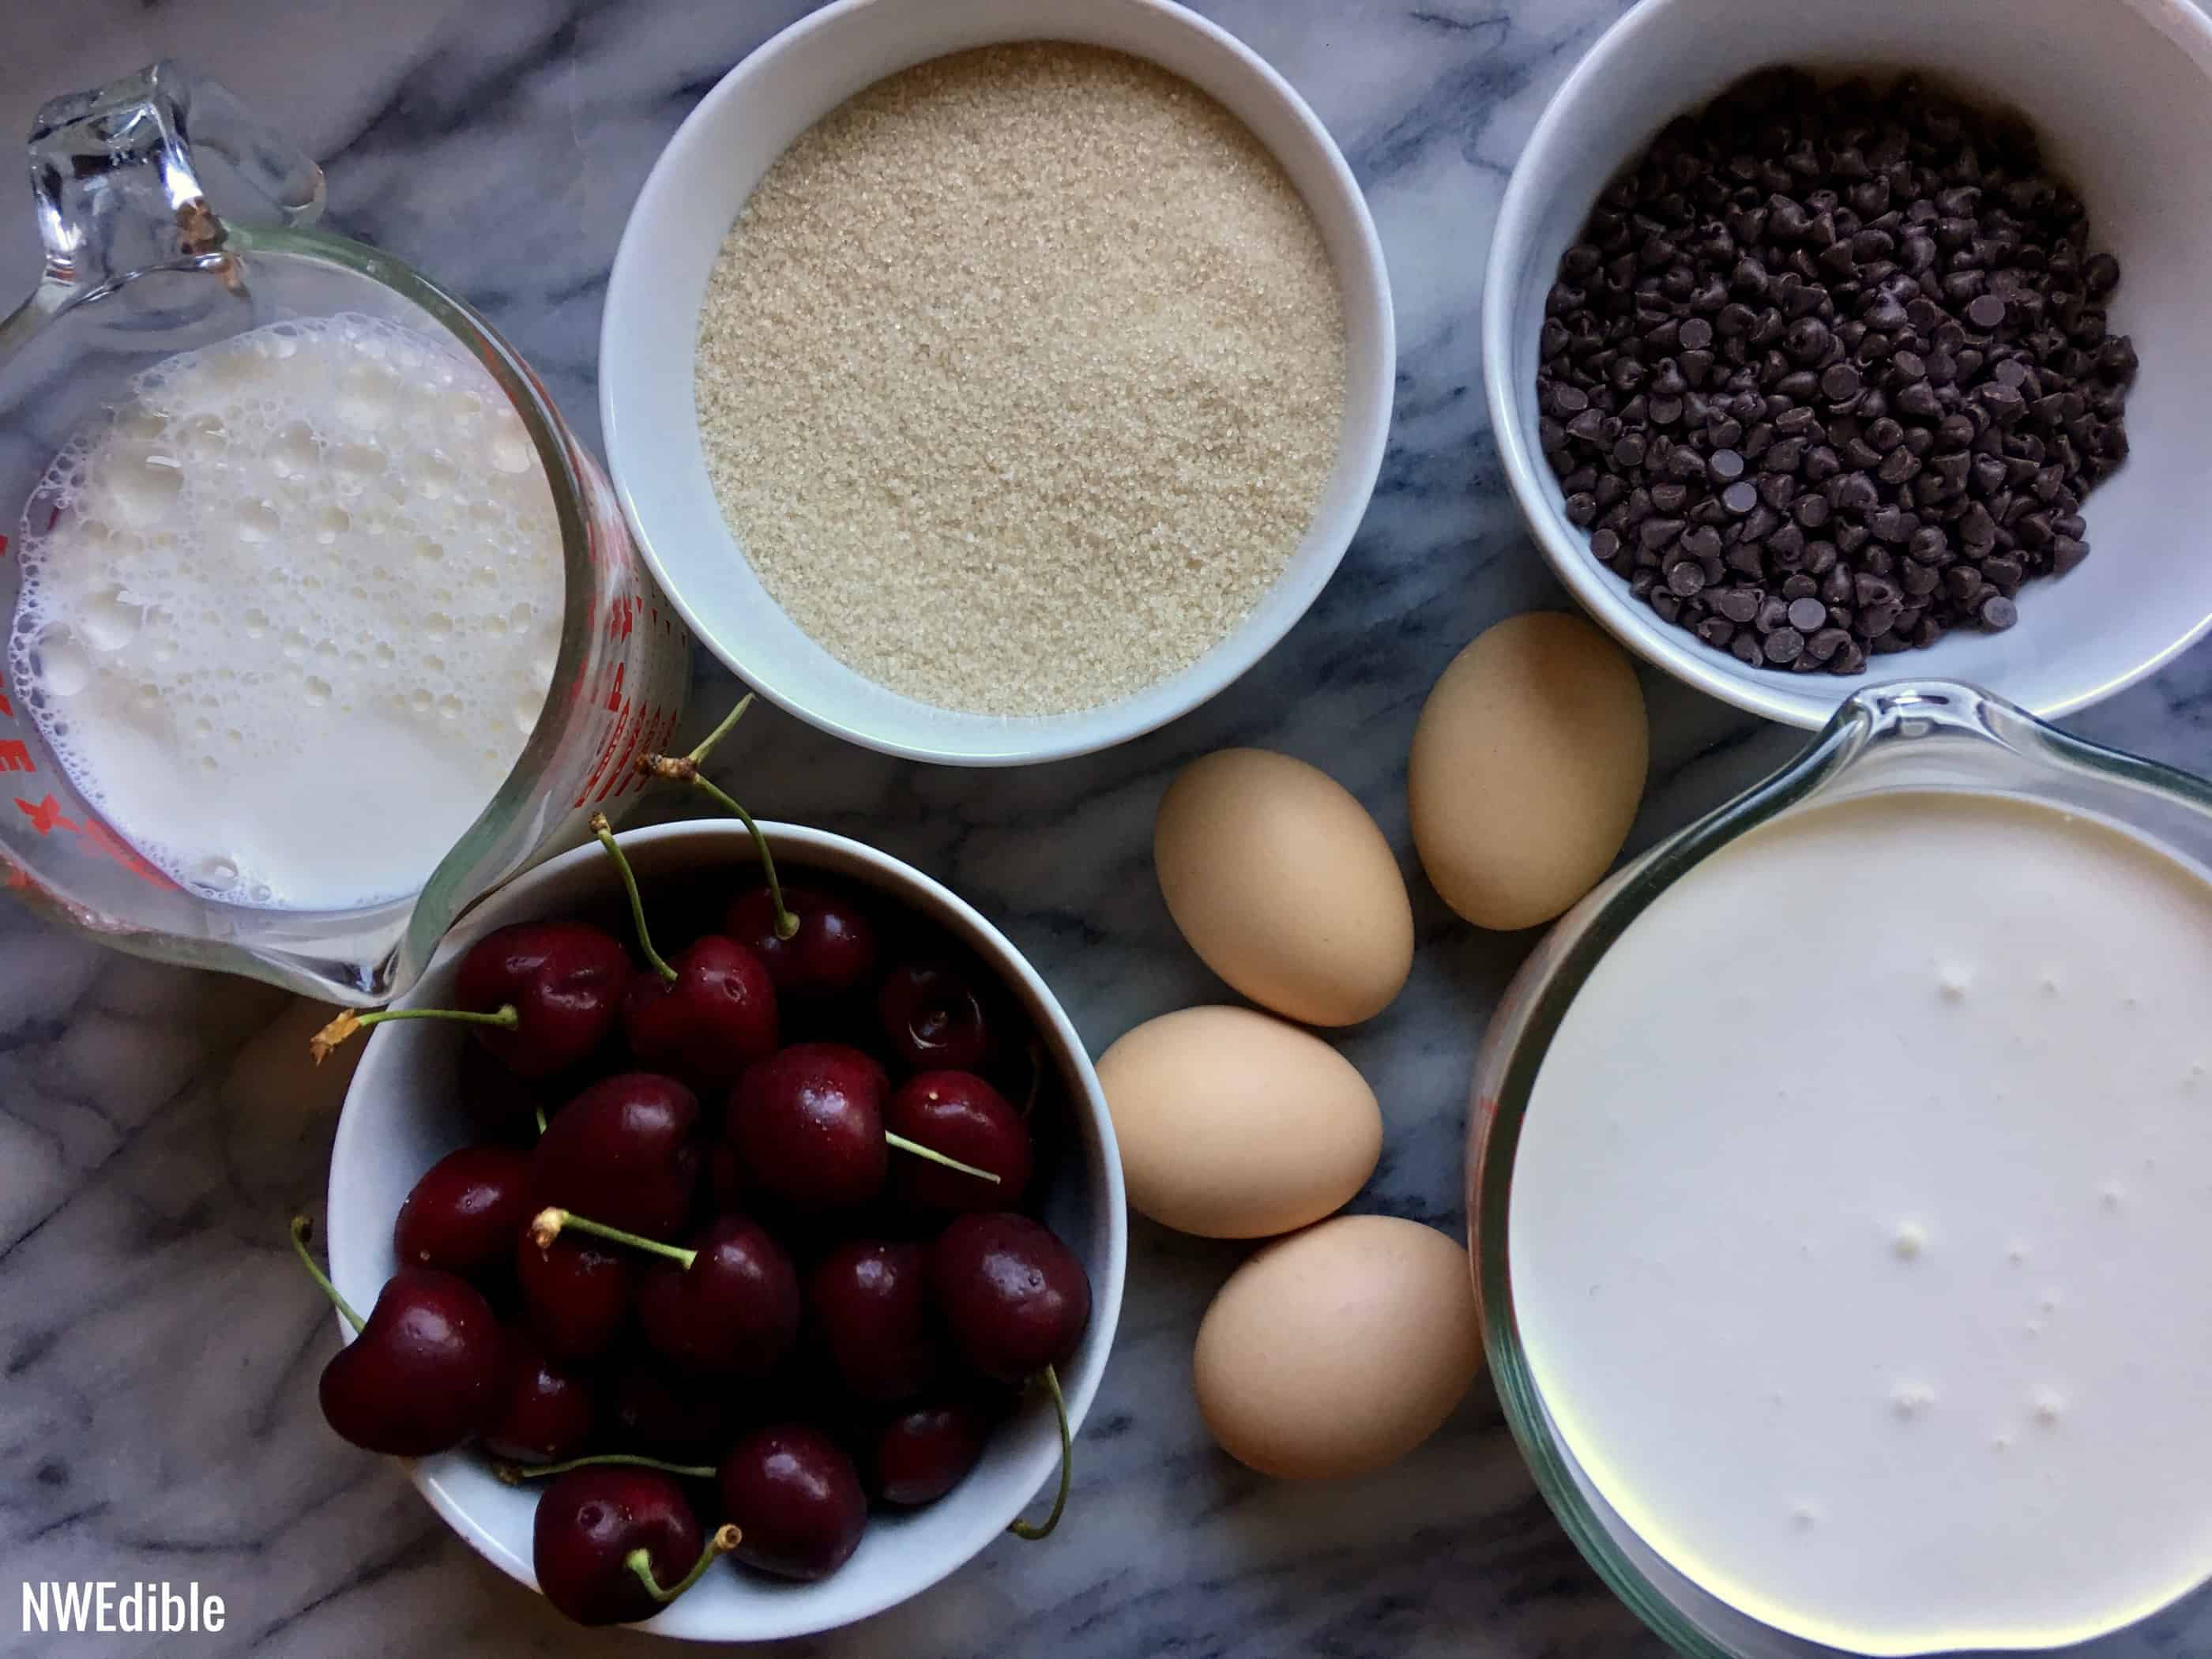 Cherry Chocolate Ice Cream Ingredients